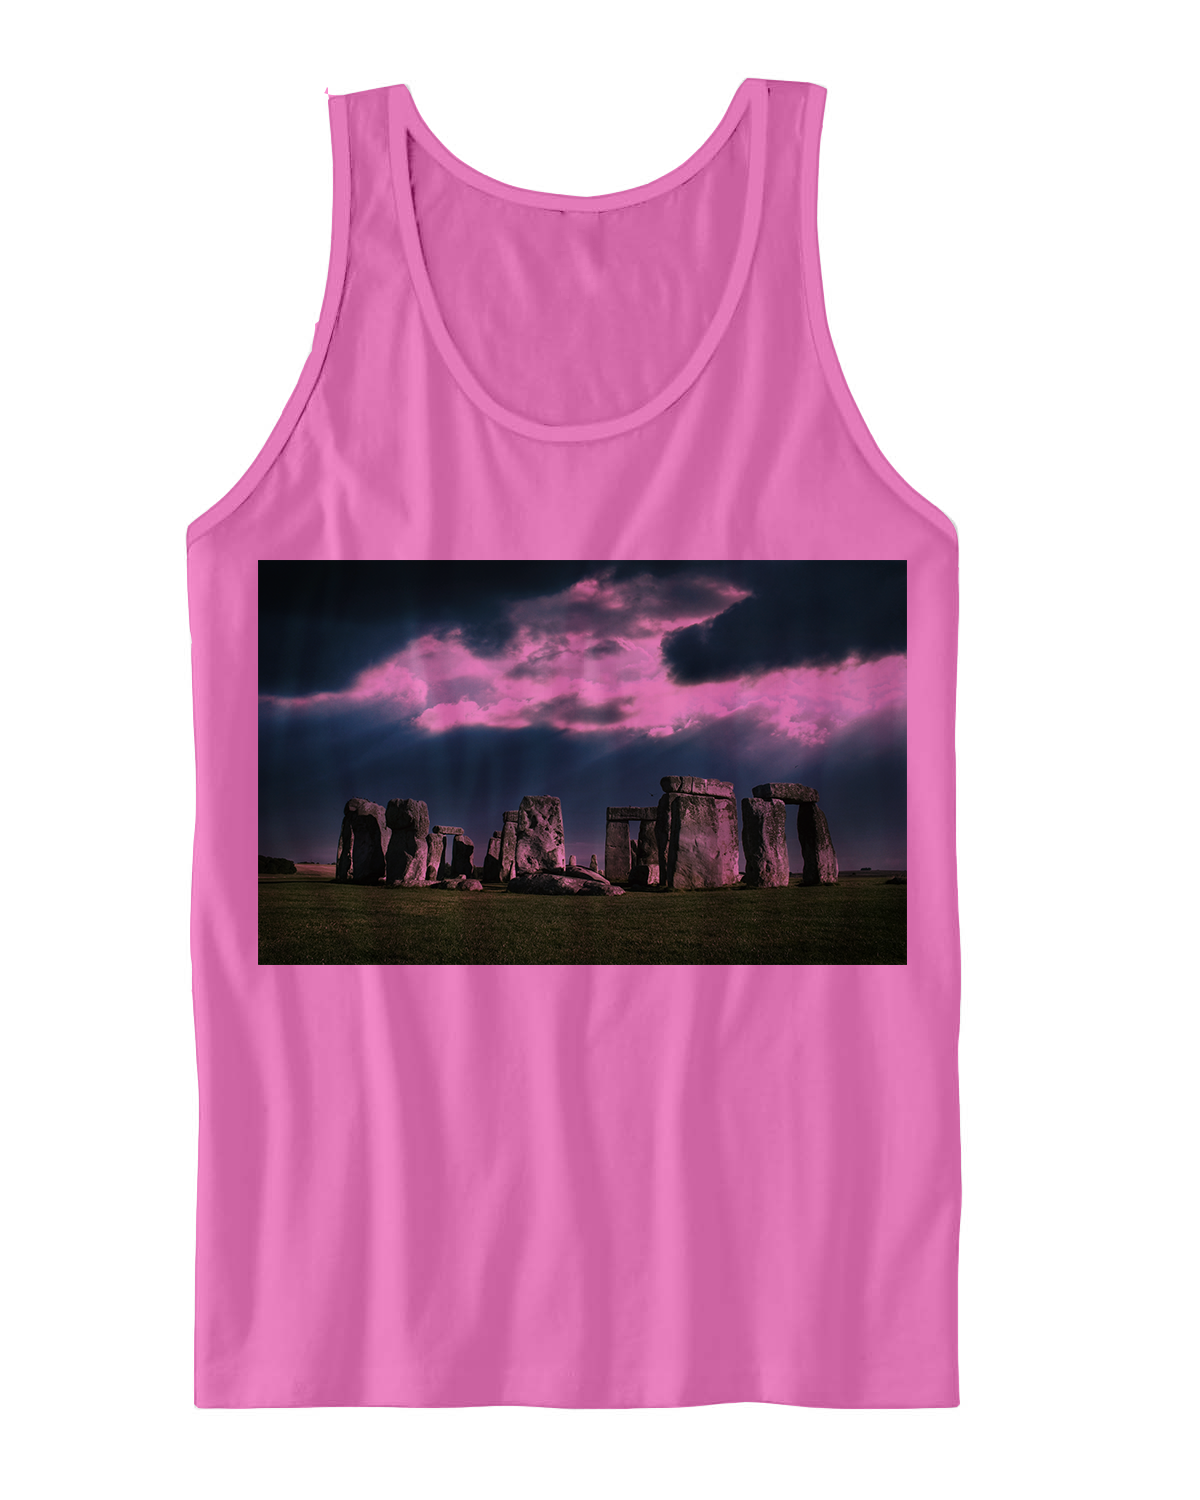 ... STONEHENGE TANK TOP TOURIST T-SHIRTS FAMOUS PLACES BIRTHDAY GIFTS CHEAP SHIRTS TREND FASHIONS CELEBRITY ...